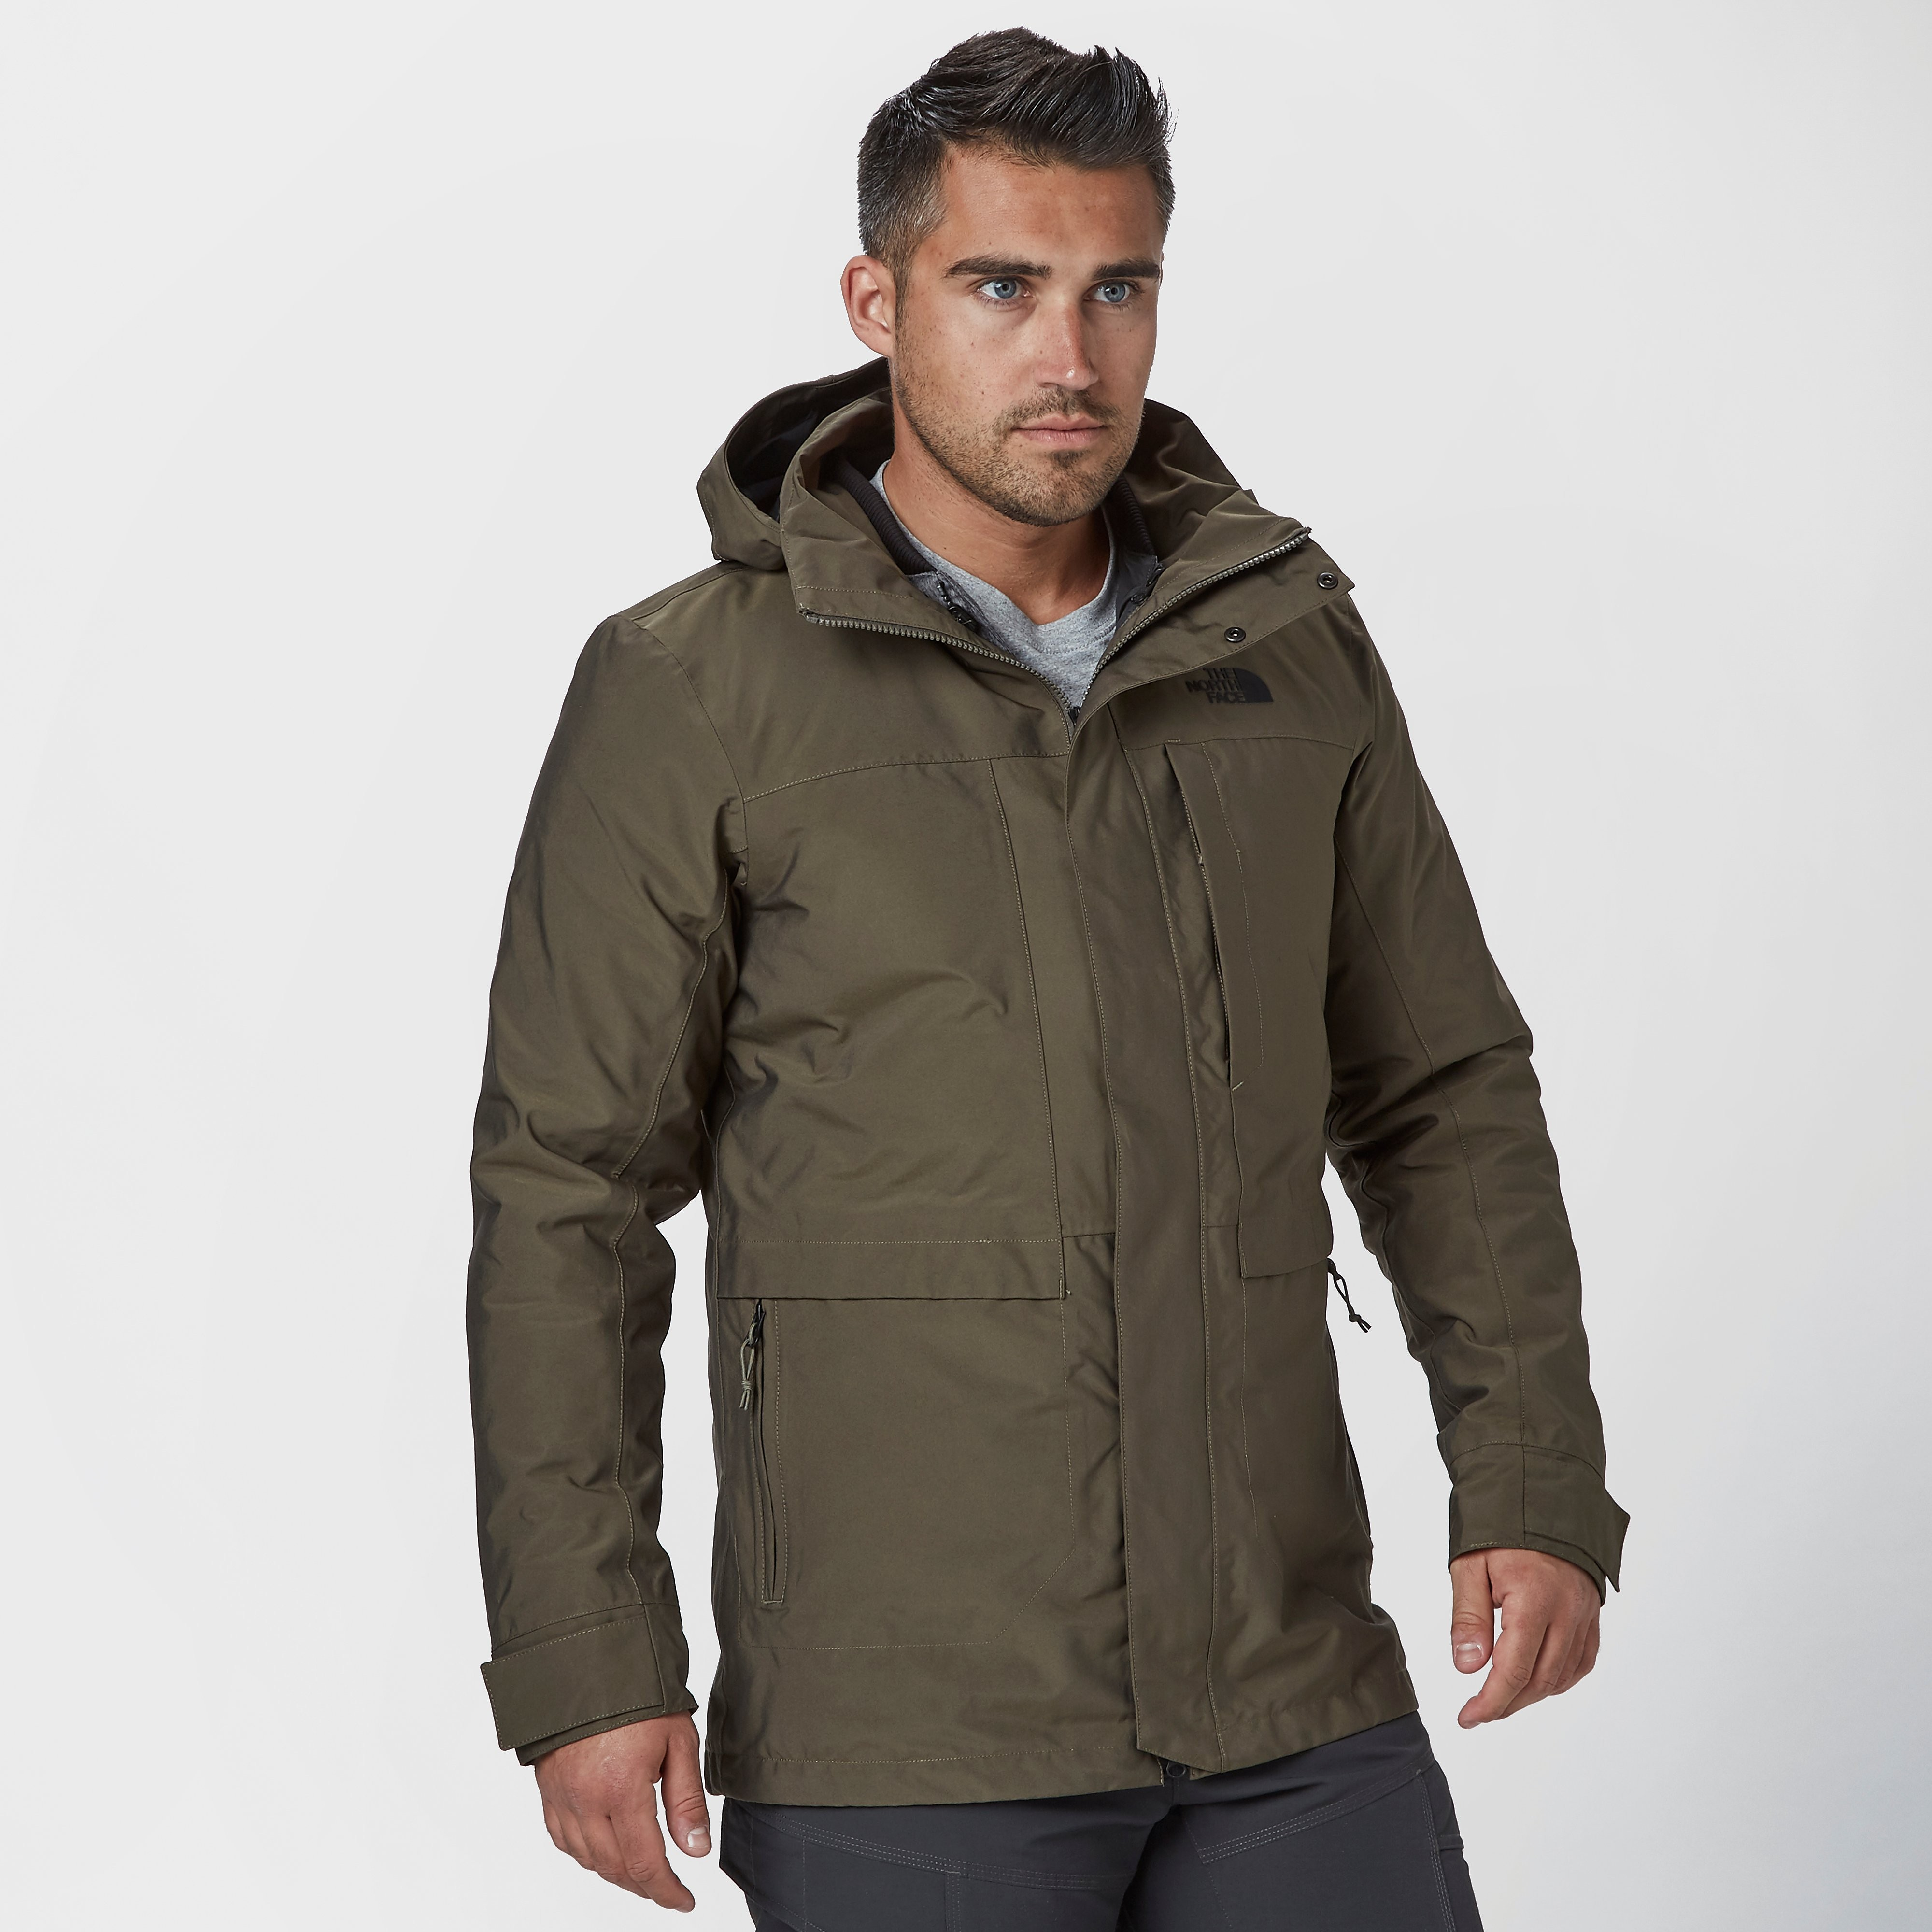 The North Face Anti-Freeze Triclimate 3-in-1 Men's Jacket